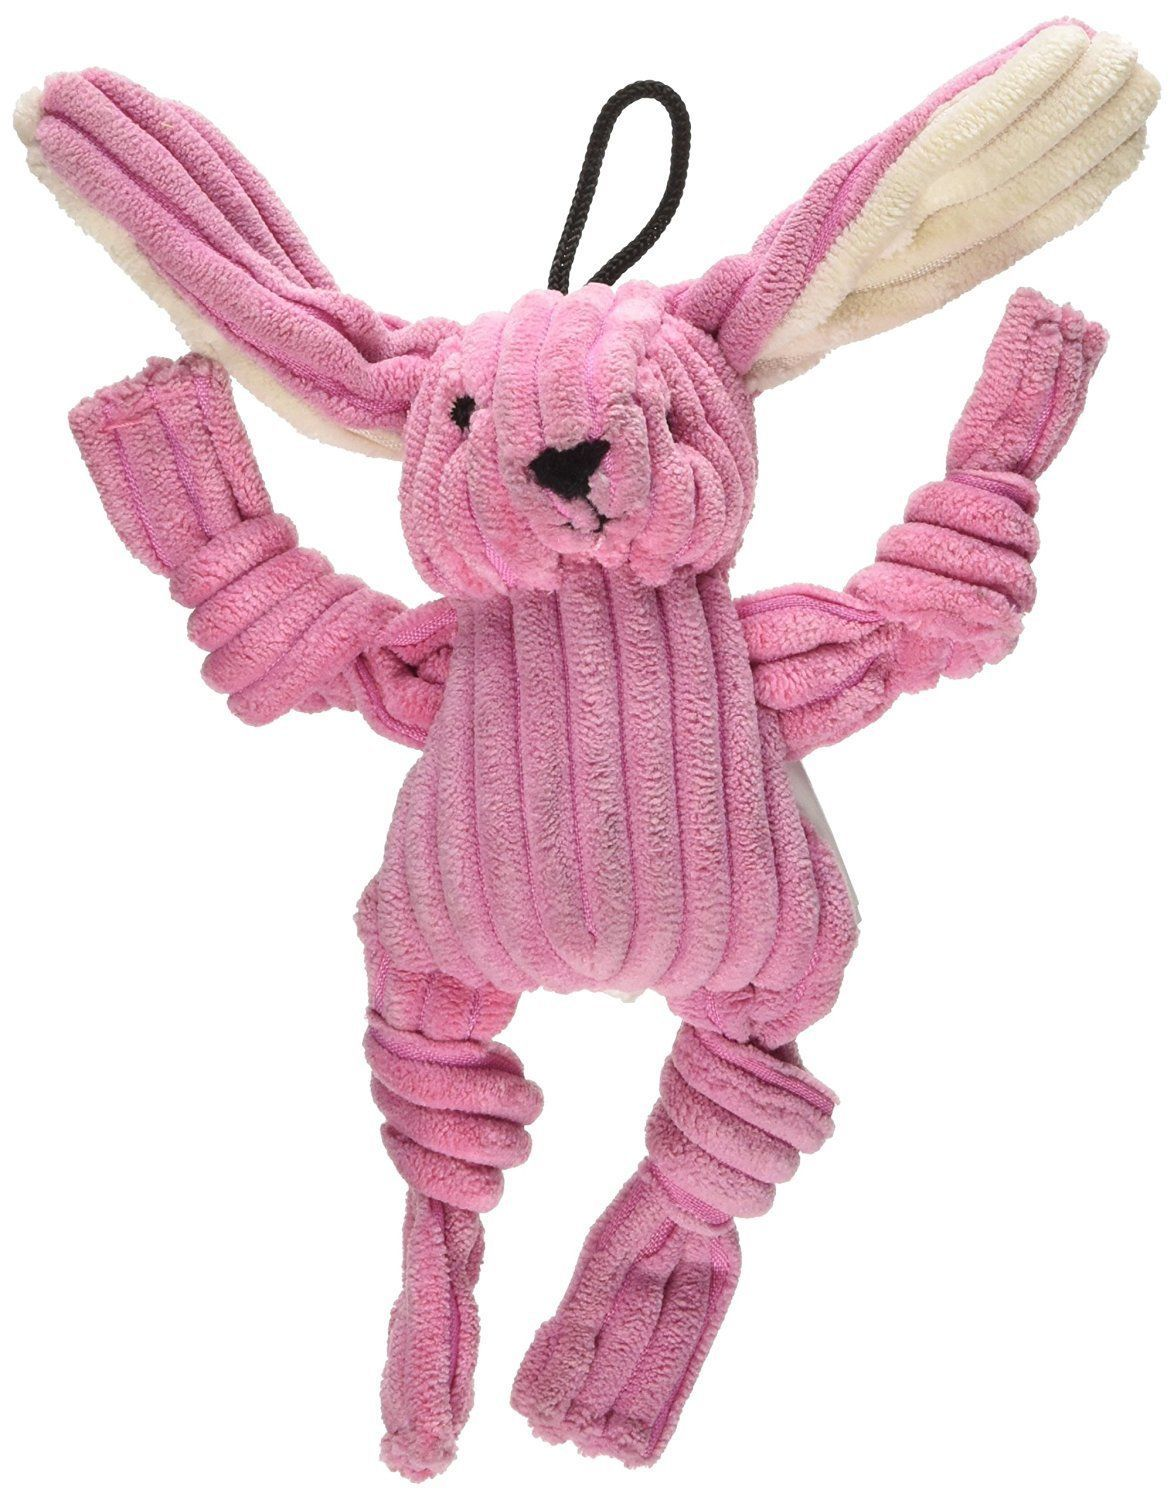 $8 99 - Hugglehounds Rope Knotties Bunny Moose Or Duck Upick Dog Toy